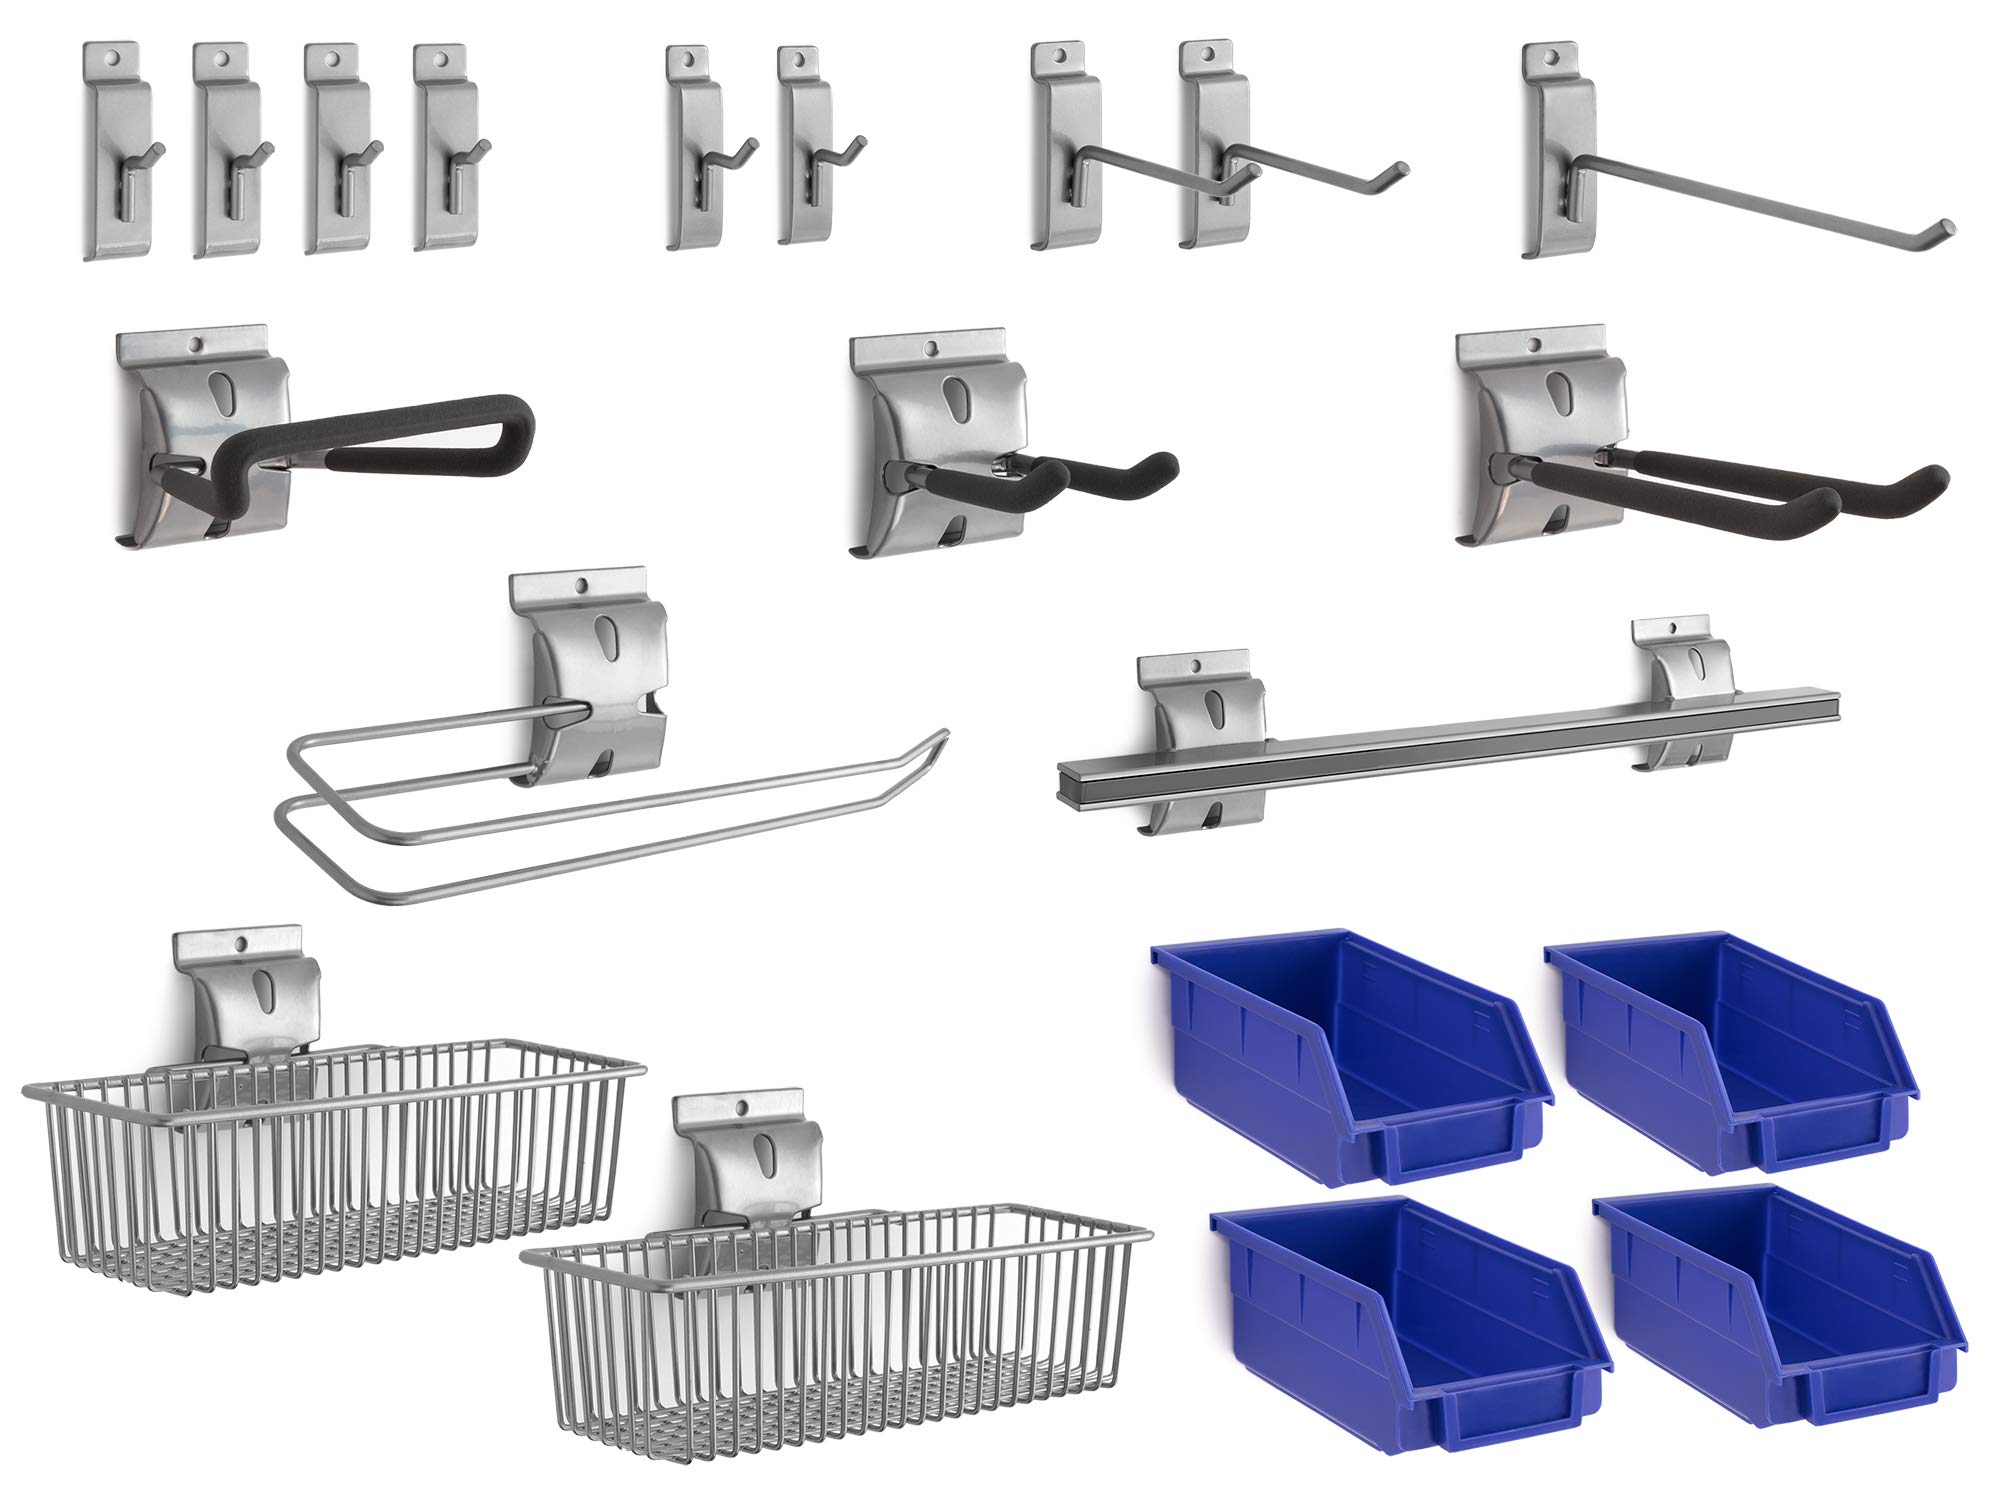 NewAge Products 20-Piece Steel Slatwall Accessory Kit, Garage Wall Organisers, 51721 by NewAge Products Inc.